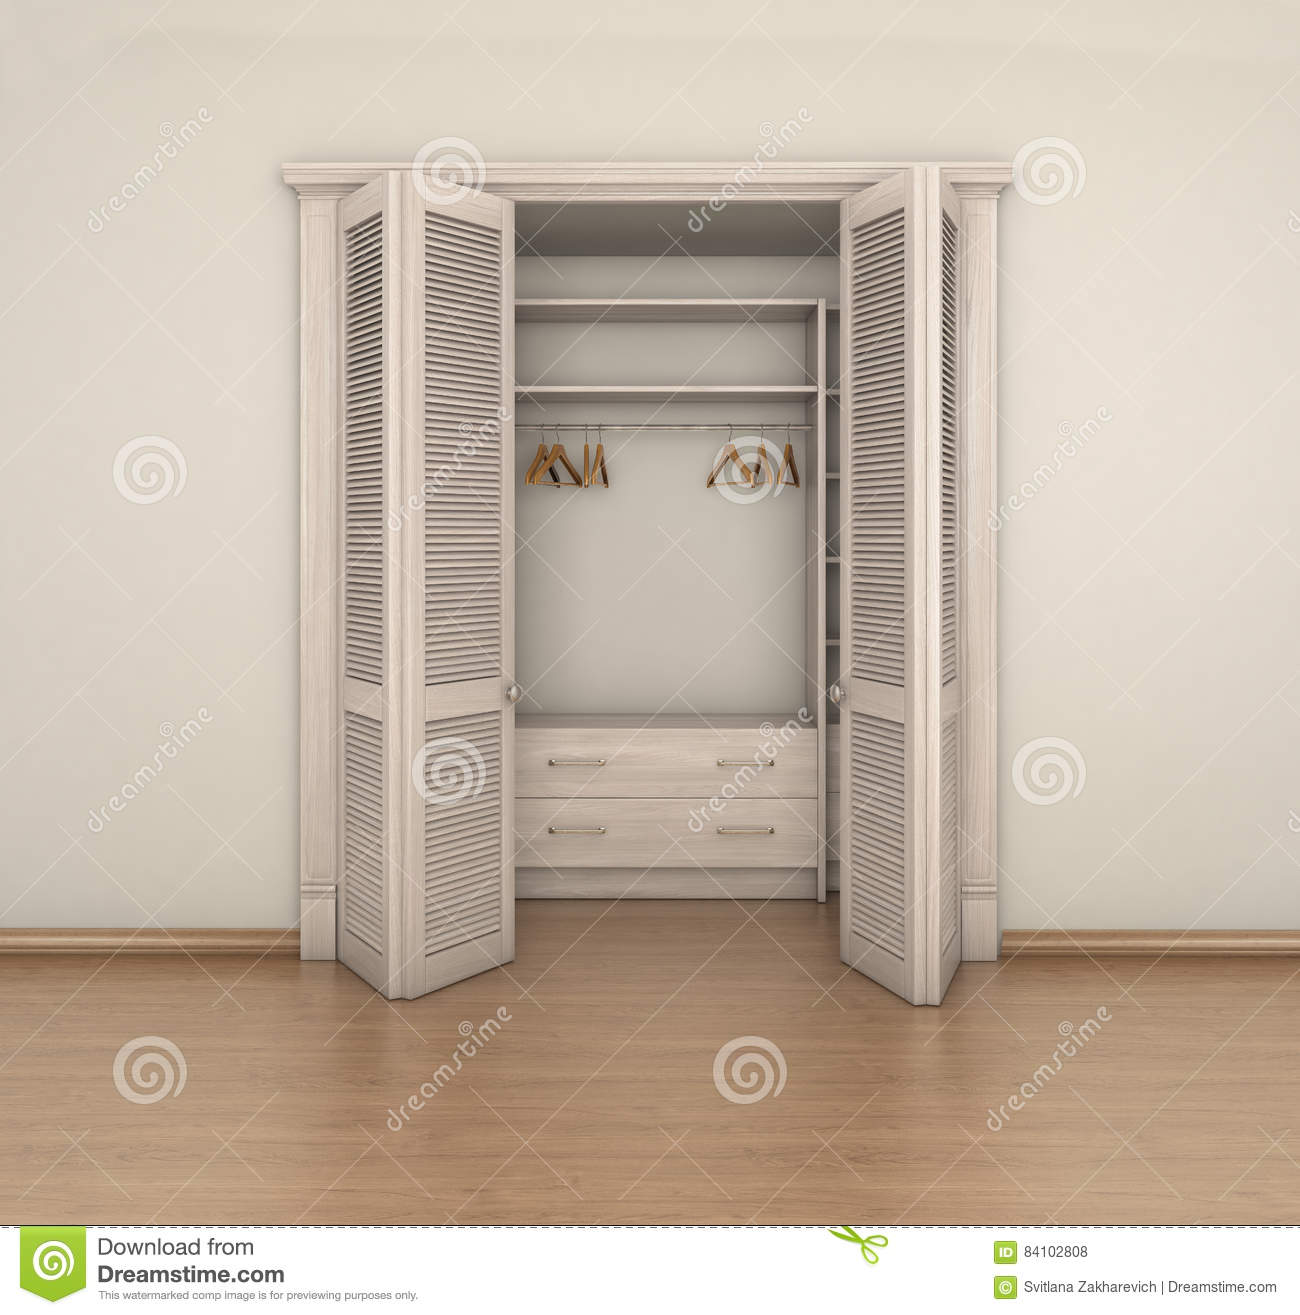 Empty Room Interior And Closet 3d Illustration Royalty Free Stock Photos